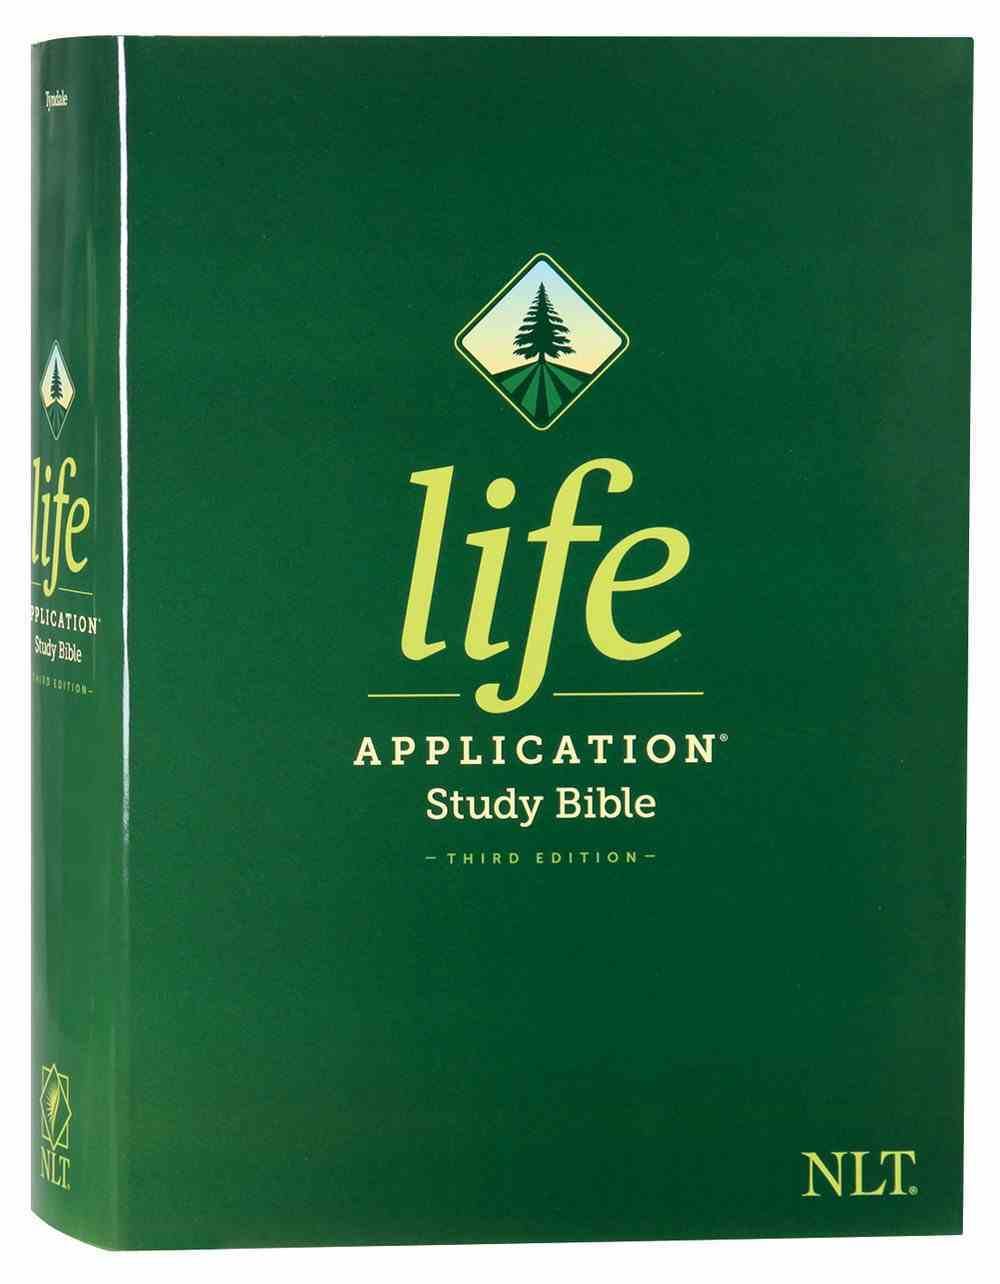 NLT Life Application Study Bible 3rd Edition (Red Letter Edition) Hardback